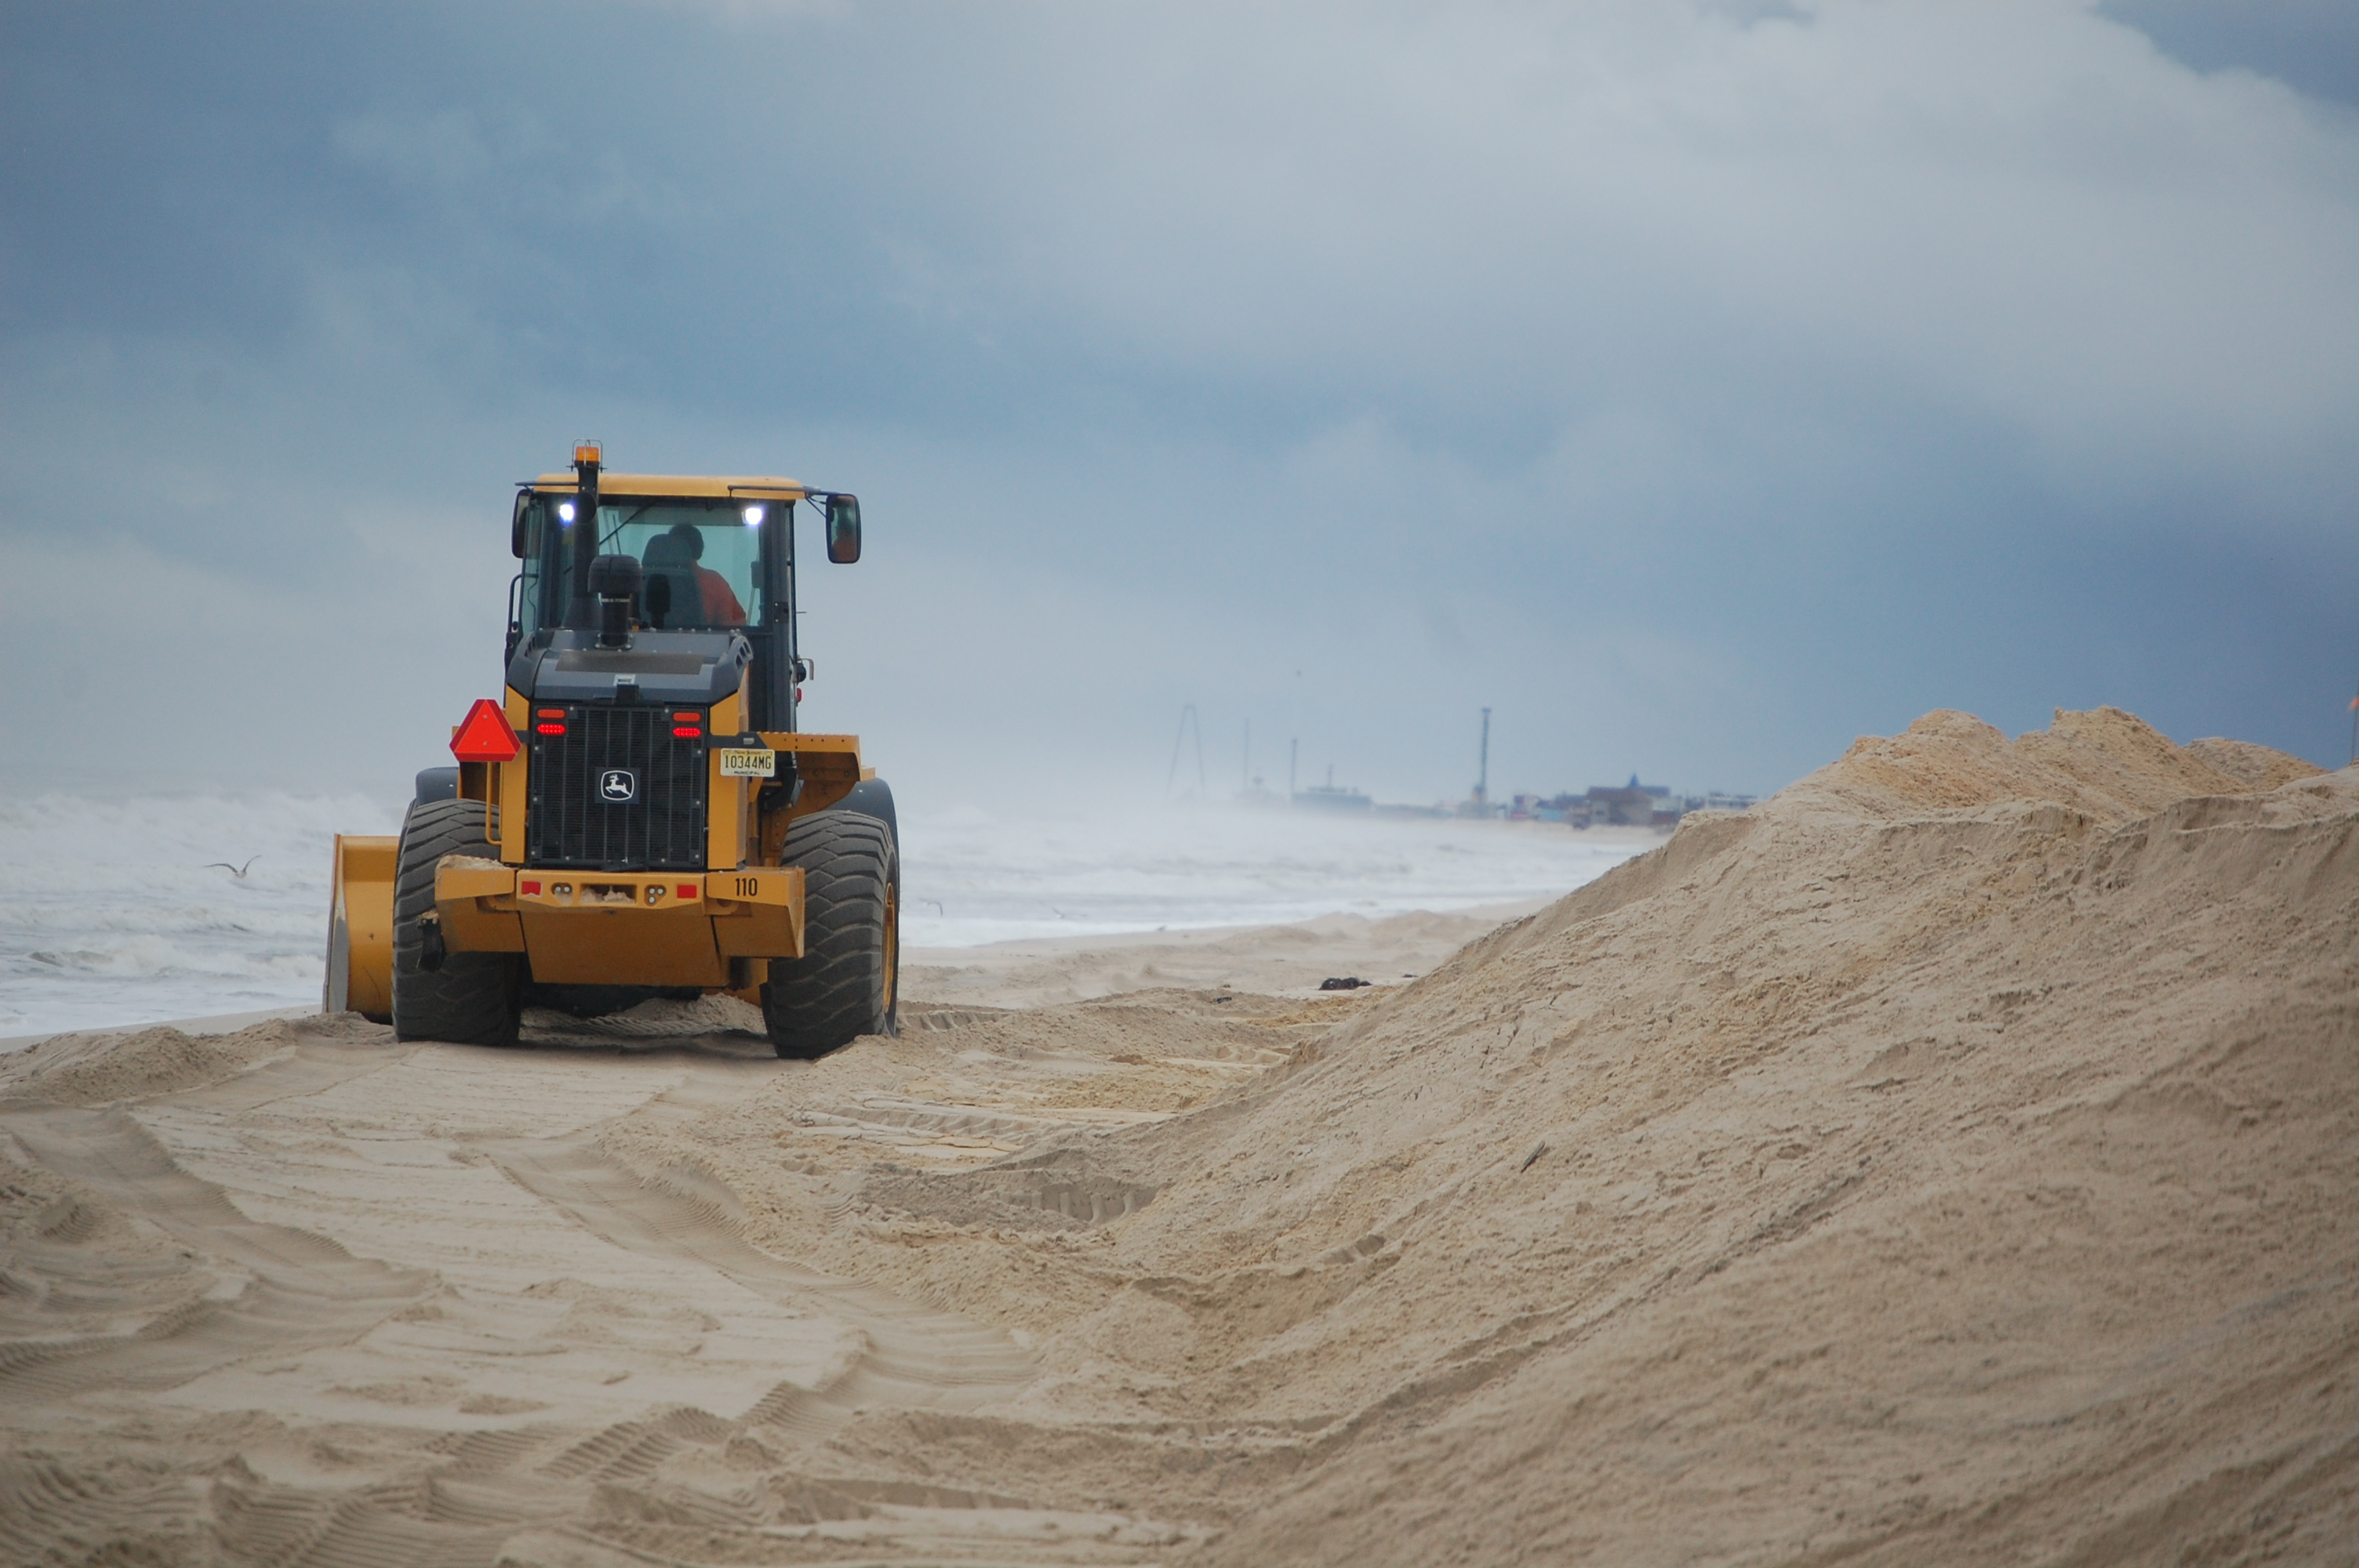 A front loader shores up dunes in Toms River's Normandy Beach section, Sept. 30, 2015. (Photo: Daniel Nee)